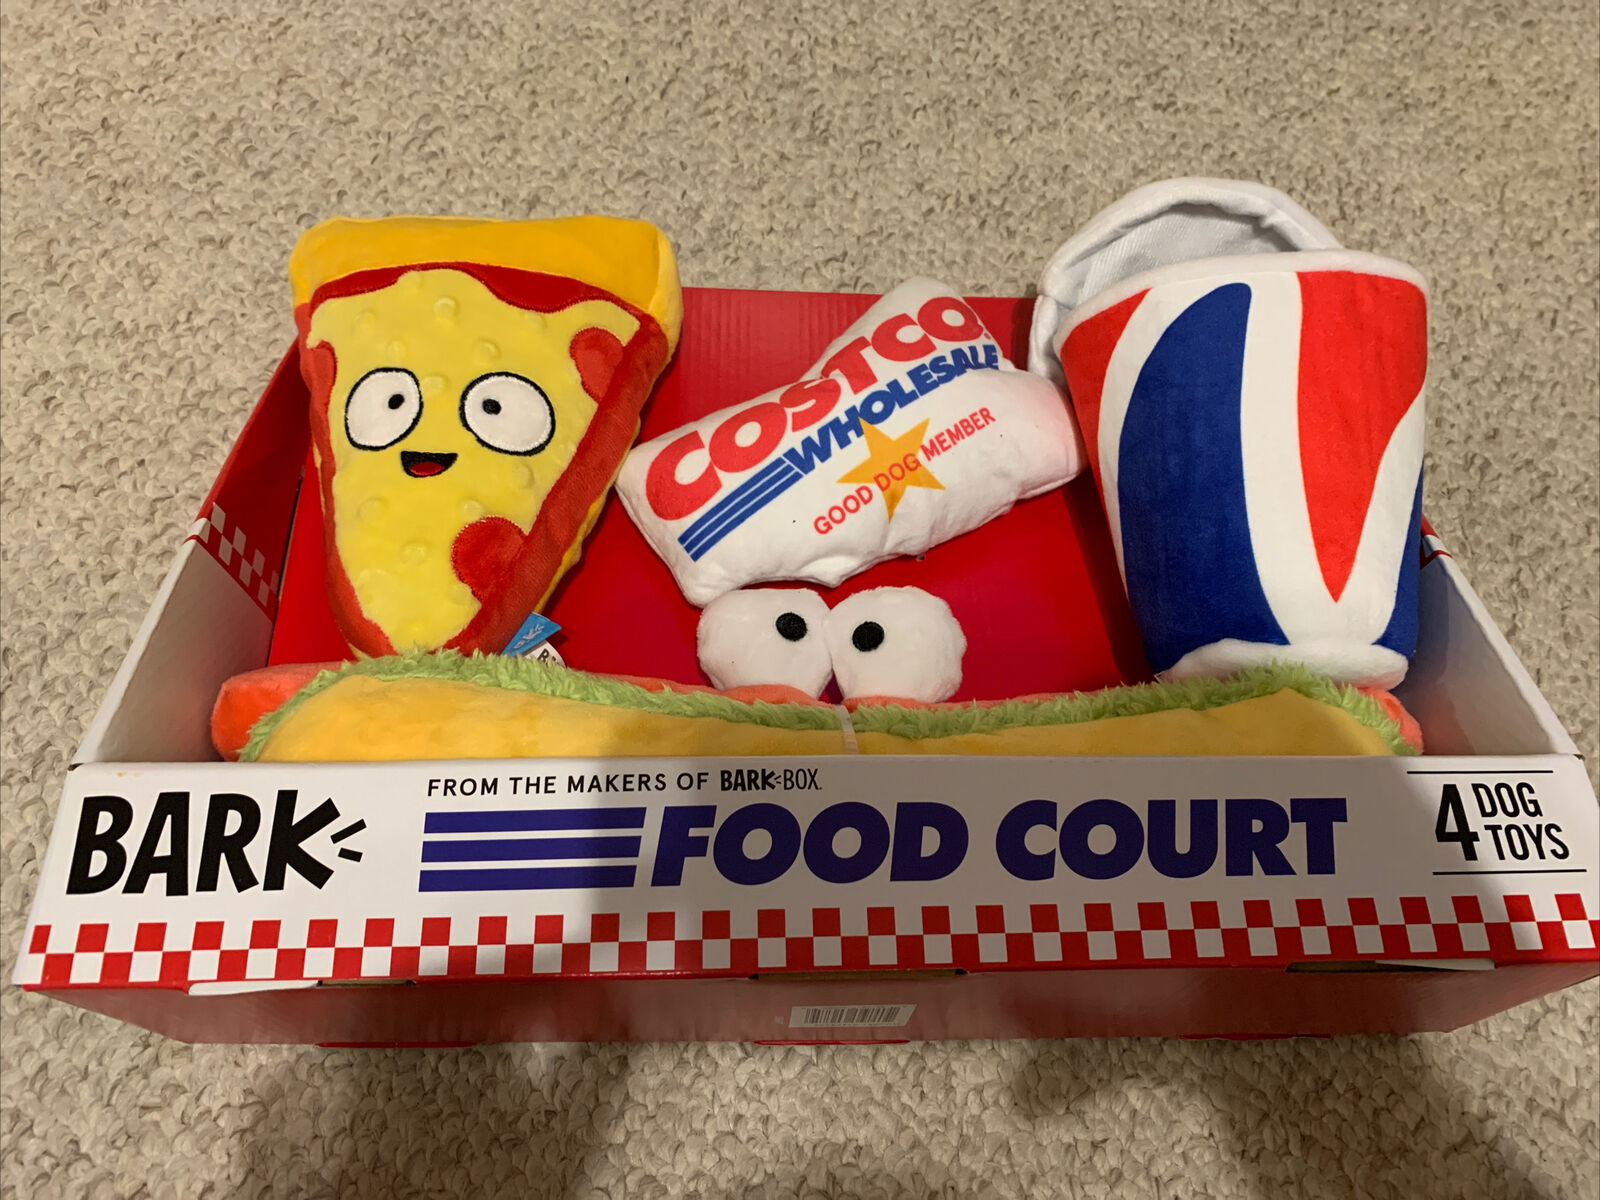 Bark Costco Food Court 4 Piece Dog Toy Set 1454226 Brand Rare Ships Fast For Sale Online Ebay